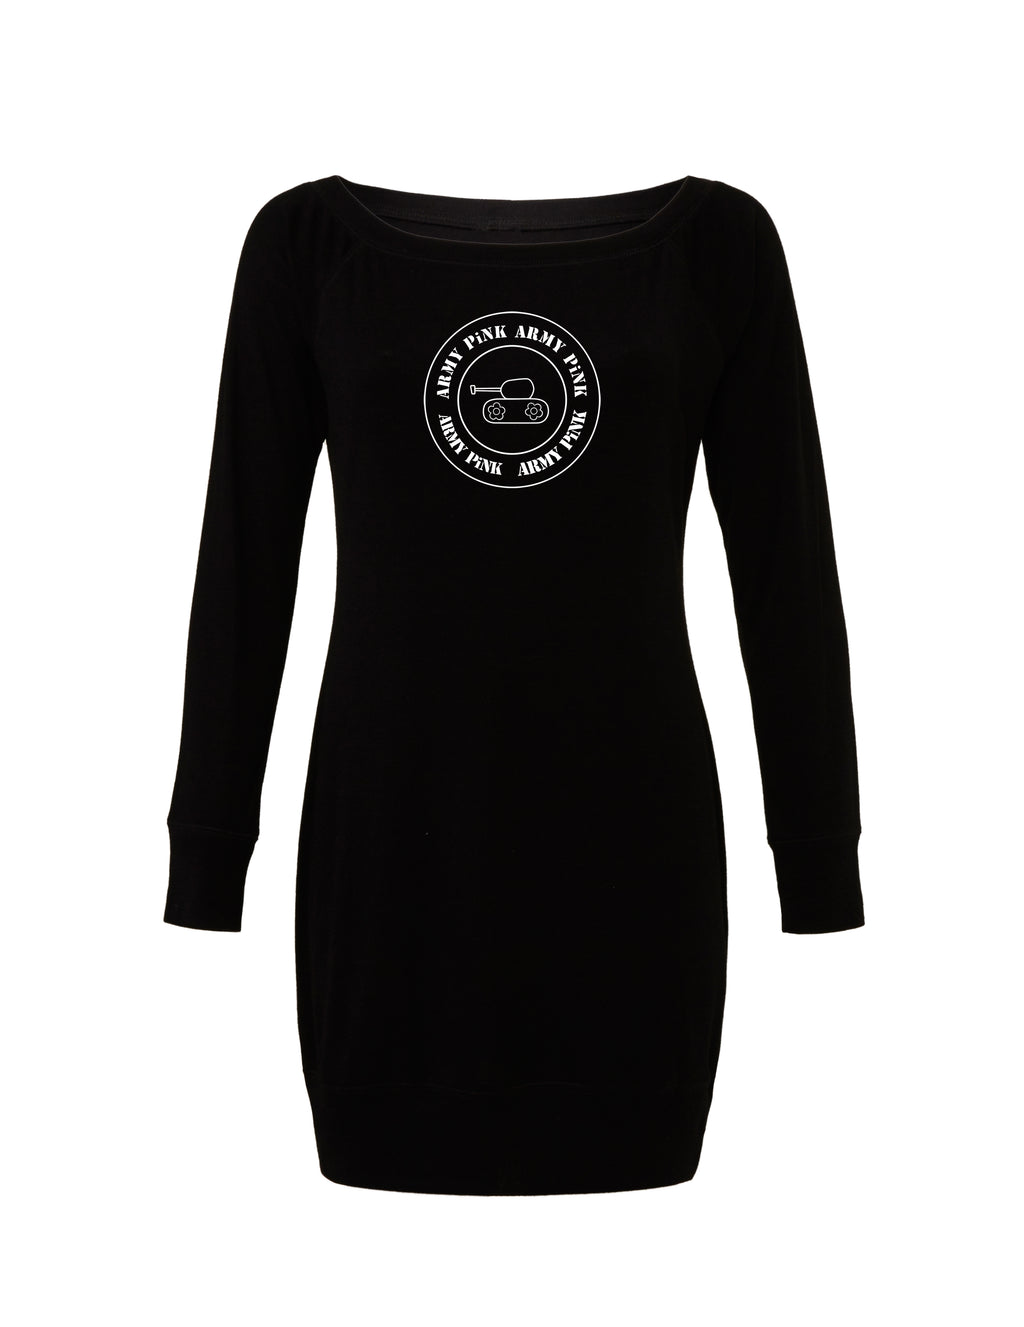 Black Lightweight Sweater Dress with white round tank graphic for 55.00 at ARMY PINK